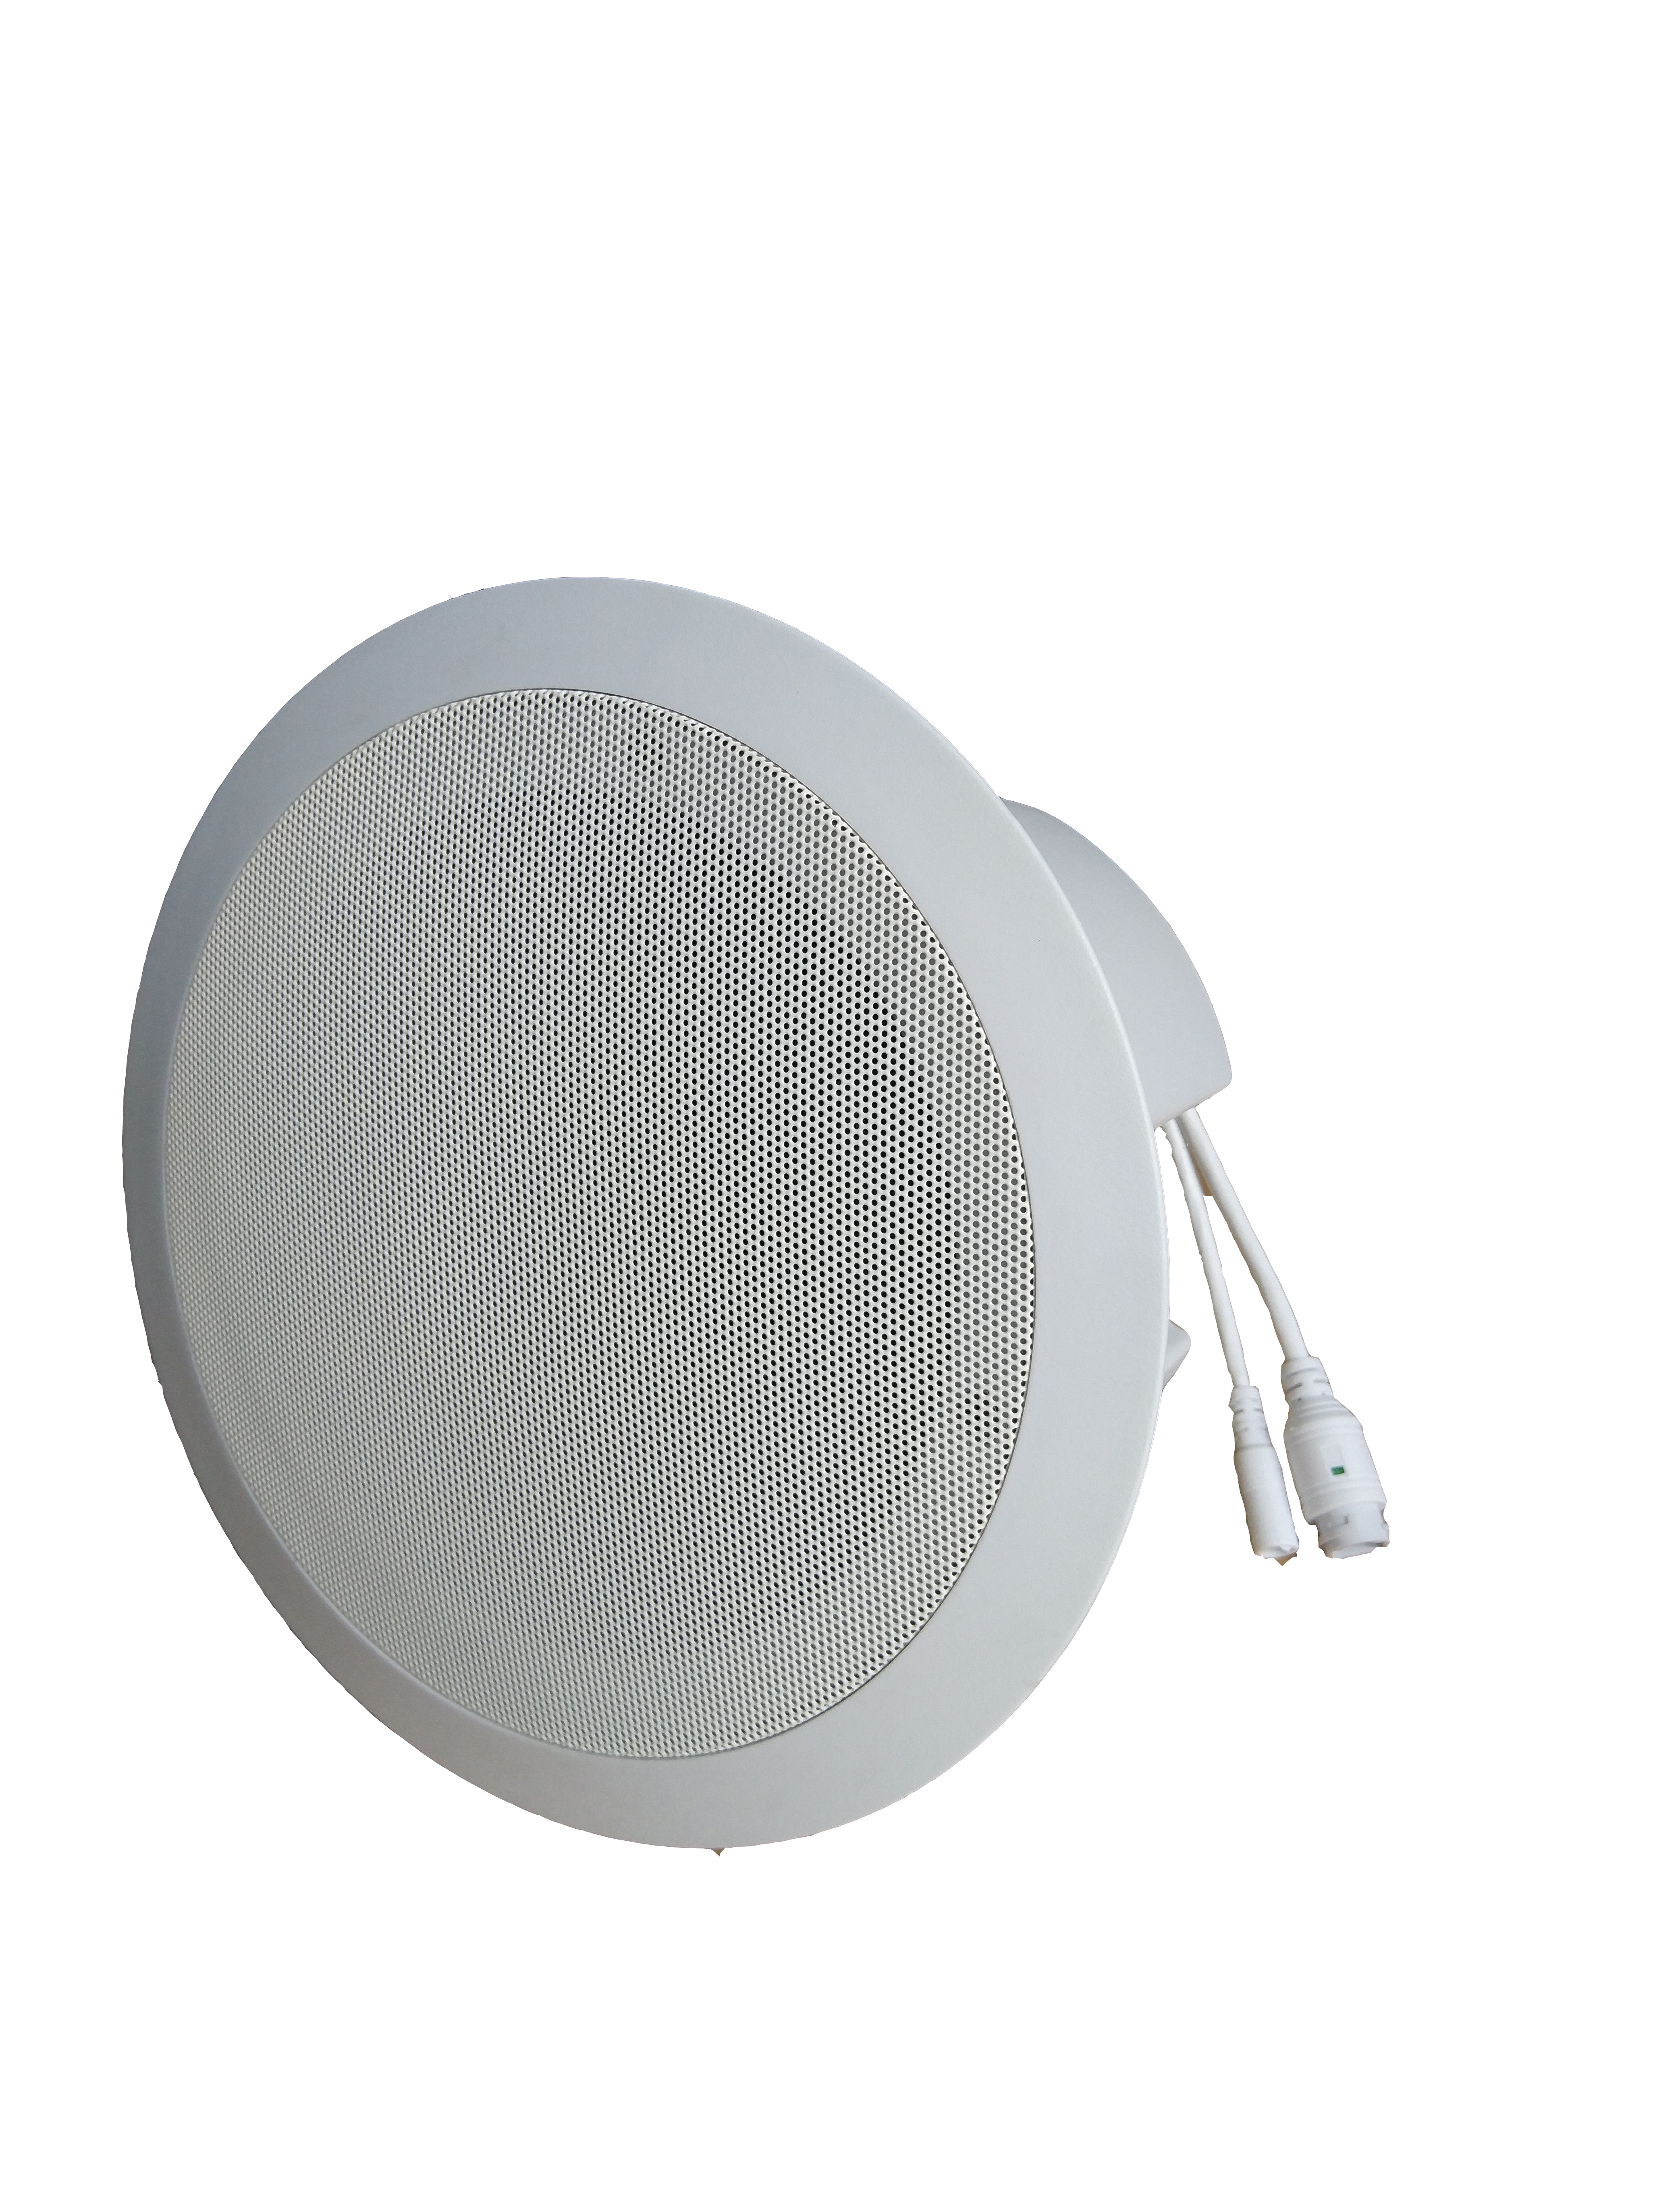 <b>IP POE Powered Ceiling Speaker FIP-910POE</b>